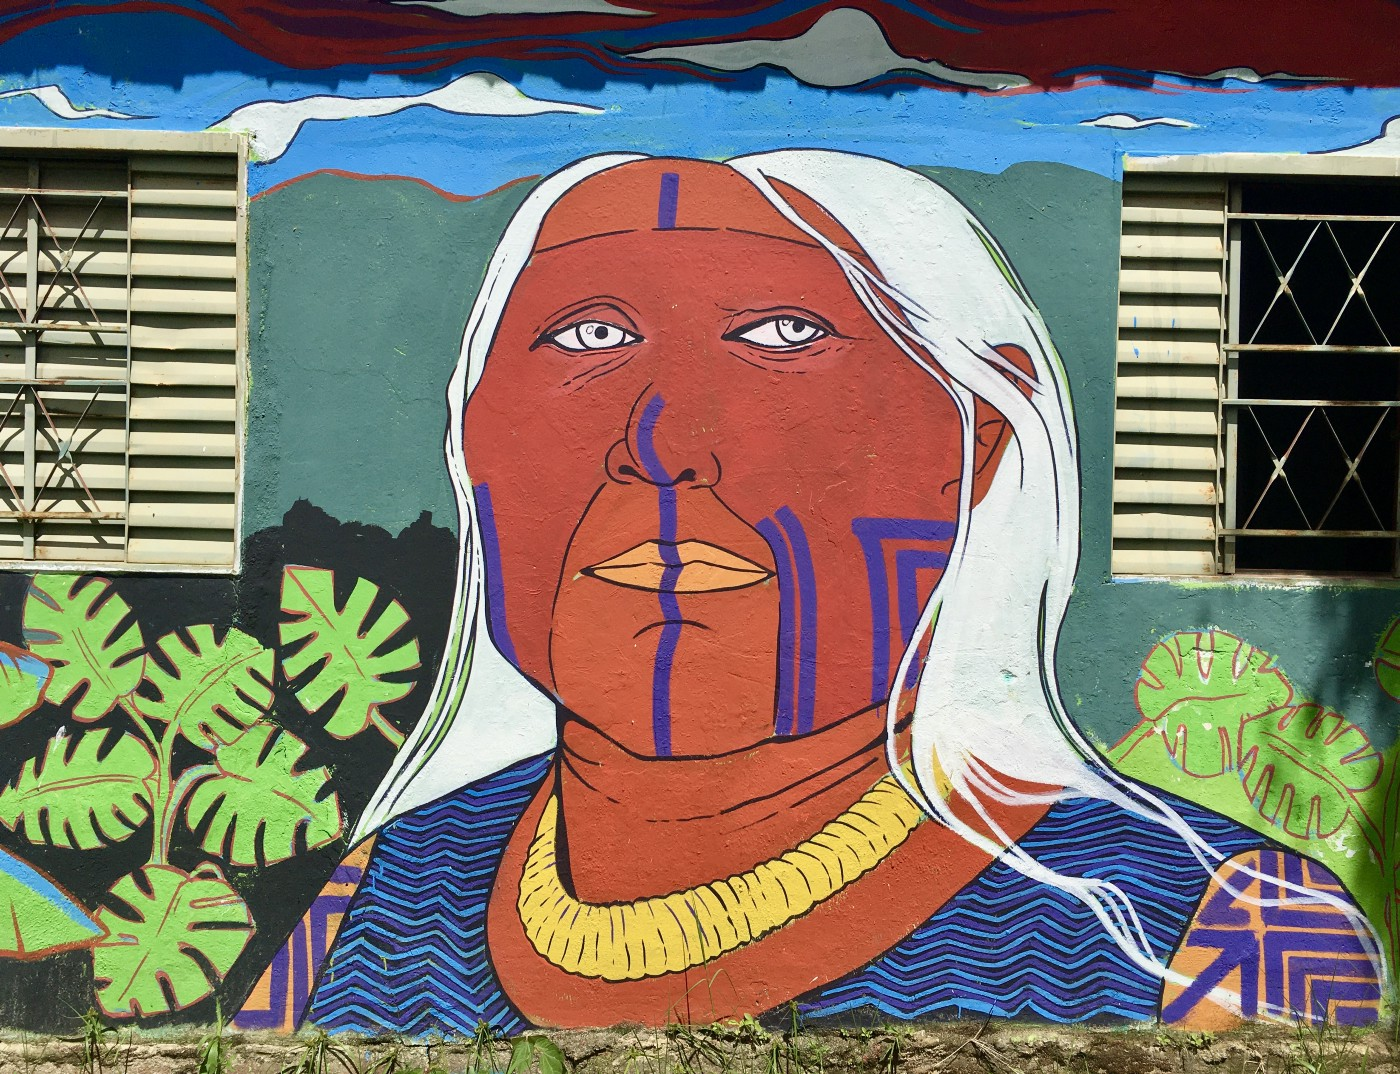 A colourful wall mural of an elder's face. They have long white hair and markings on their left cheek and from nose to chin in purple.